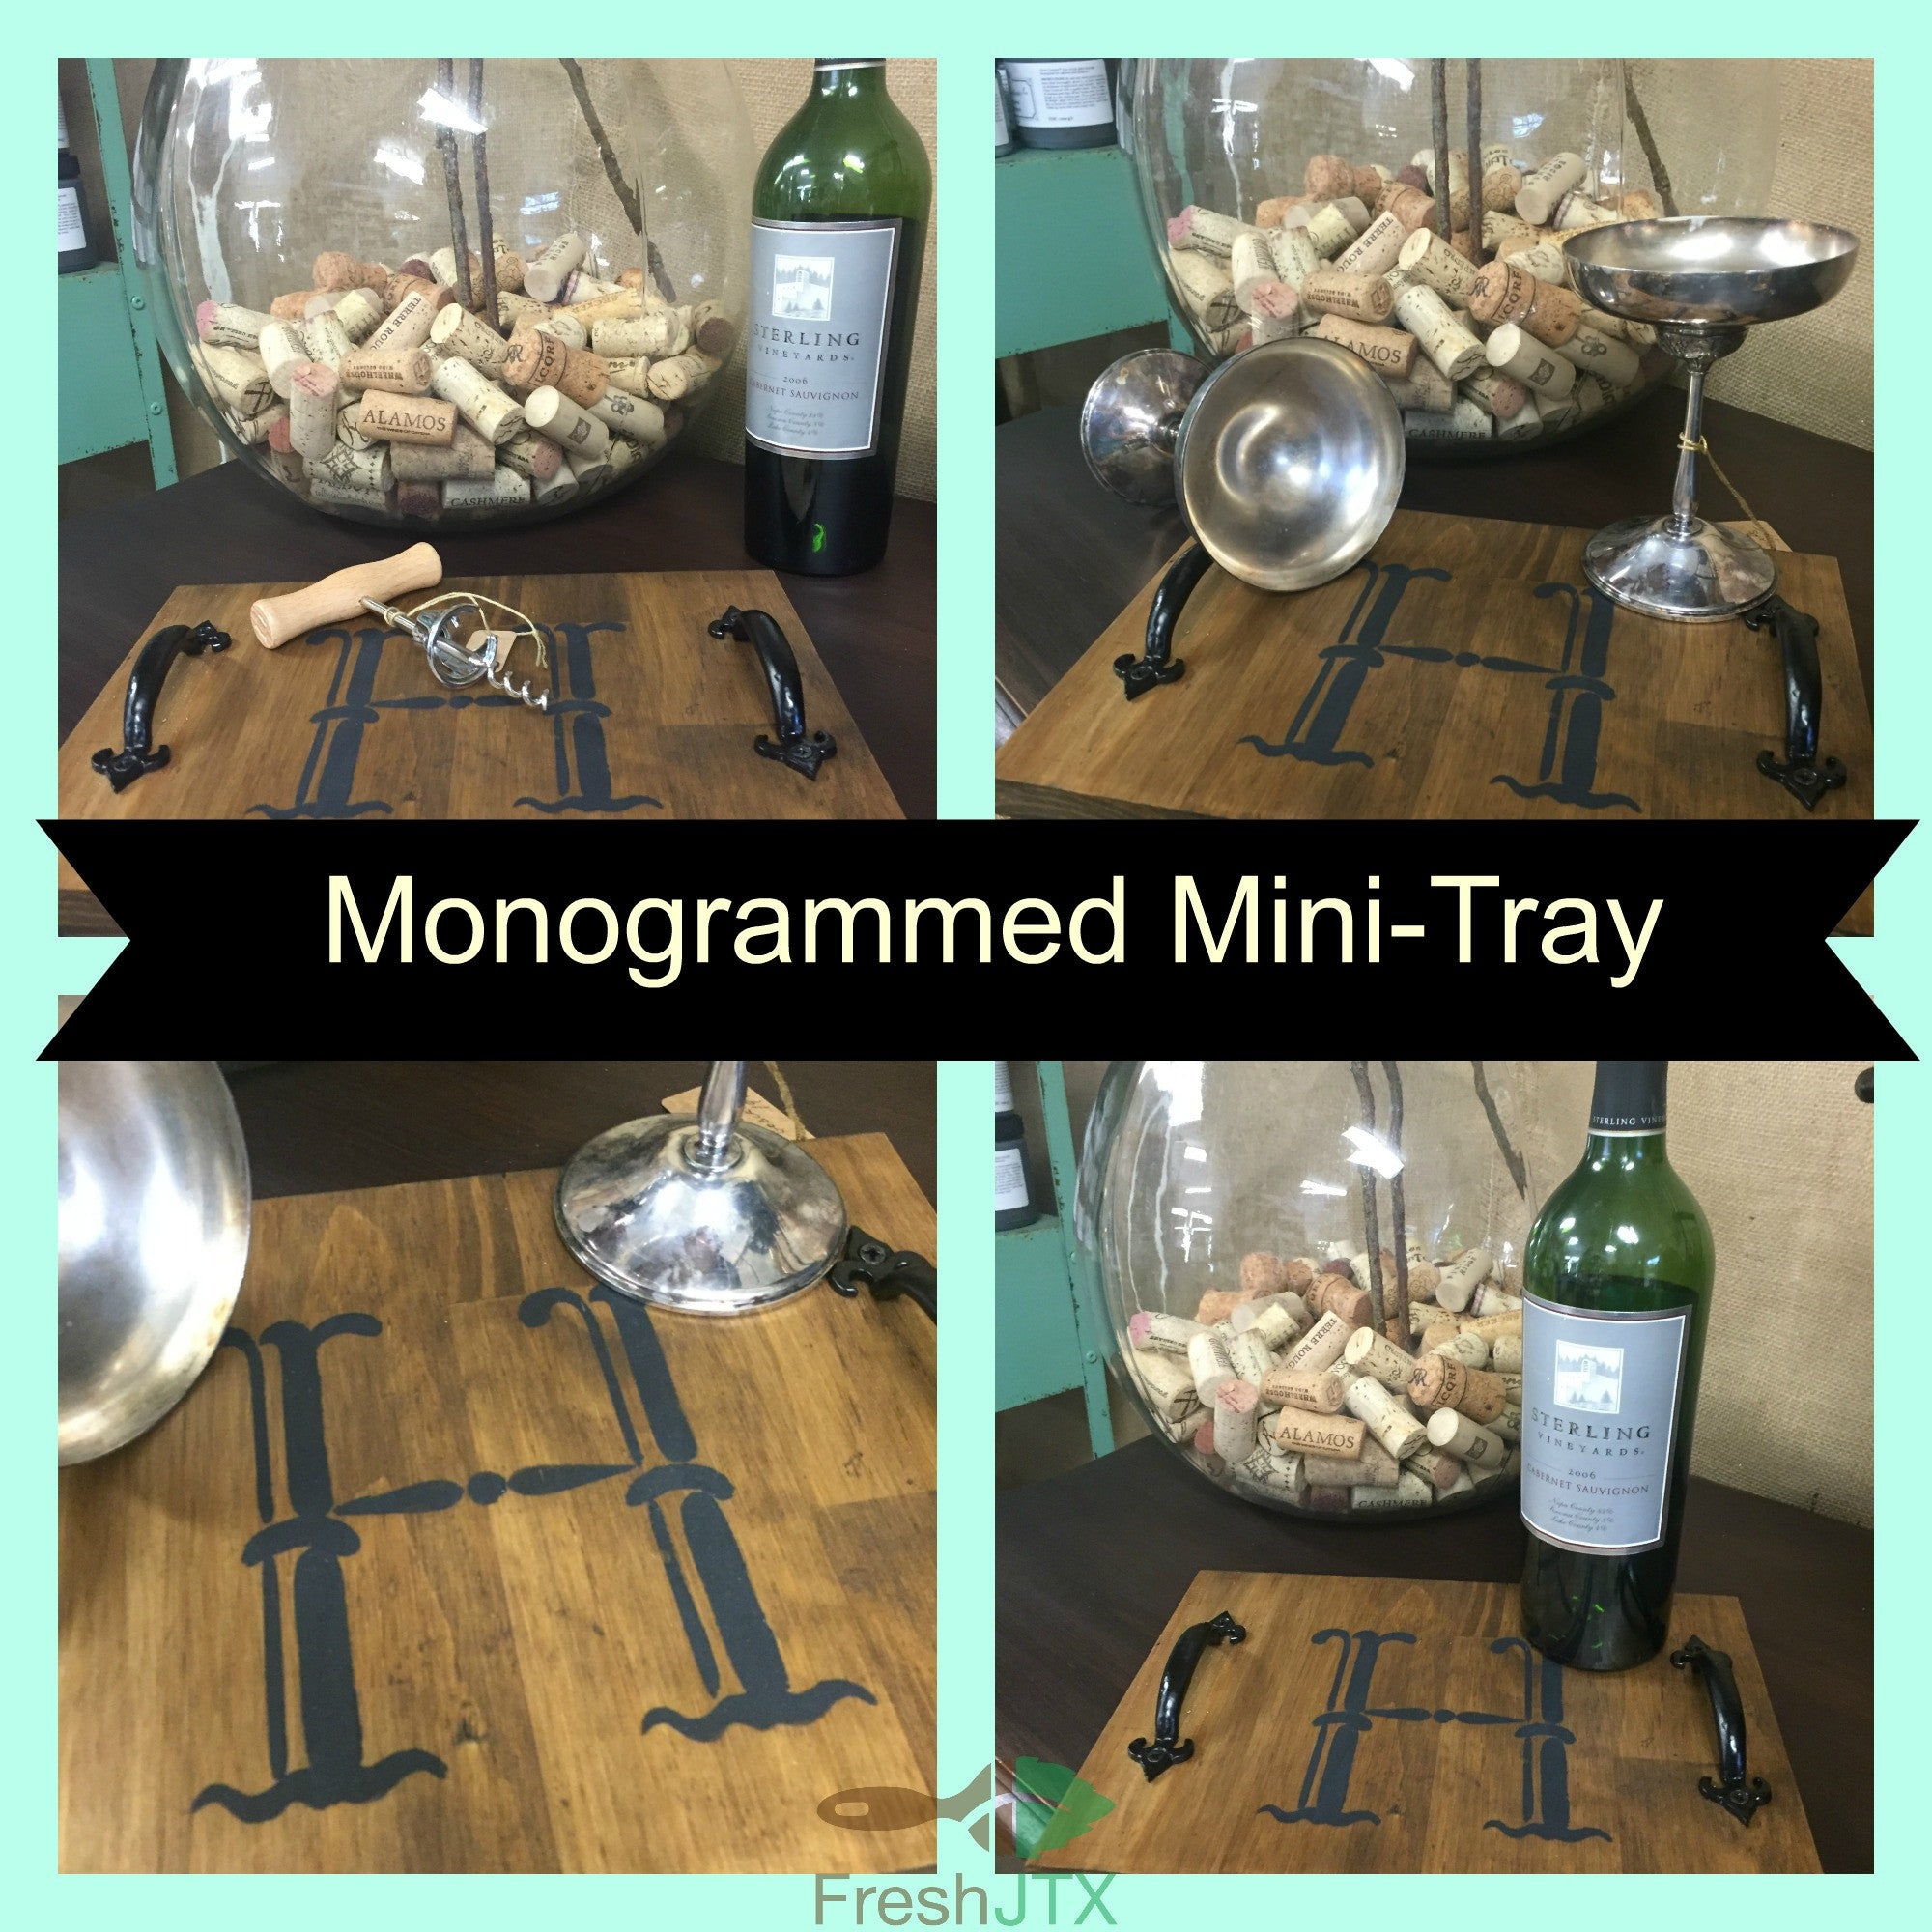 Custom Mongrammed Mini-Tray